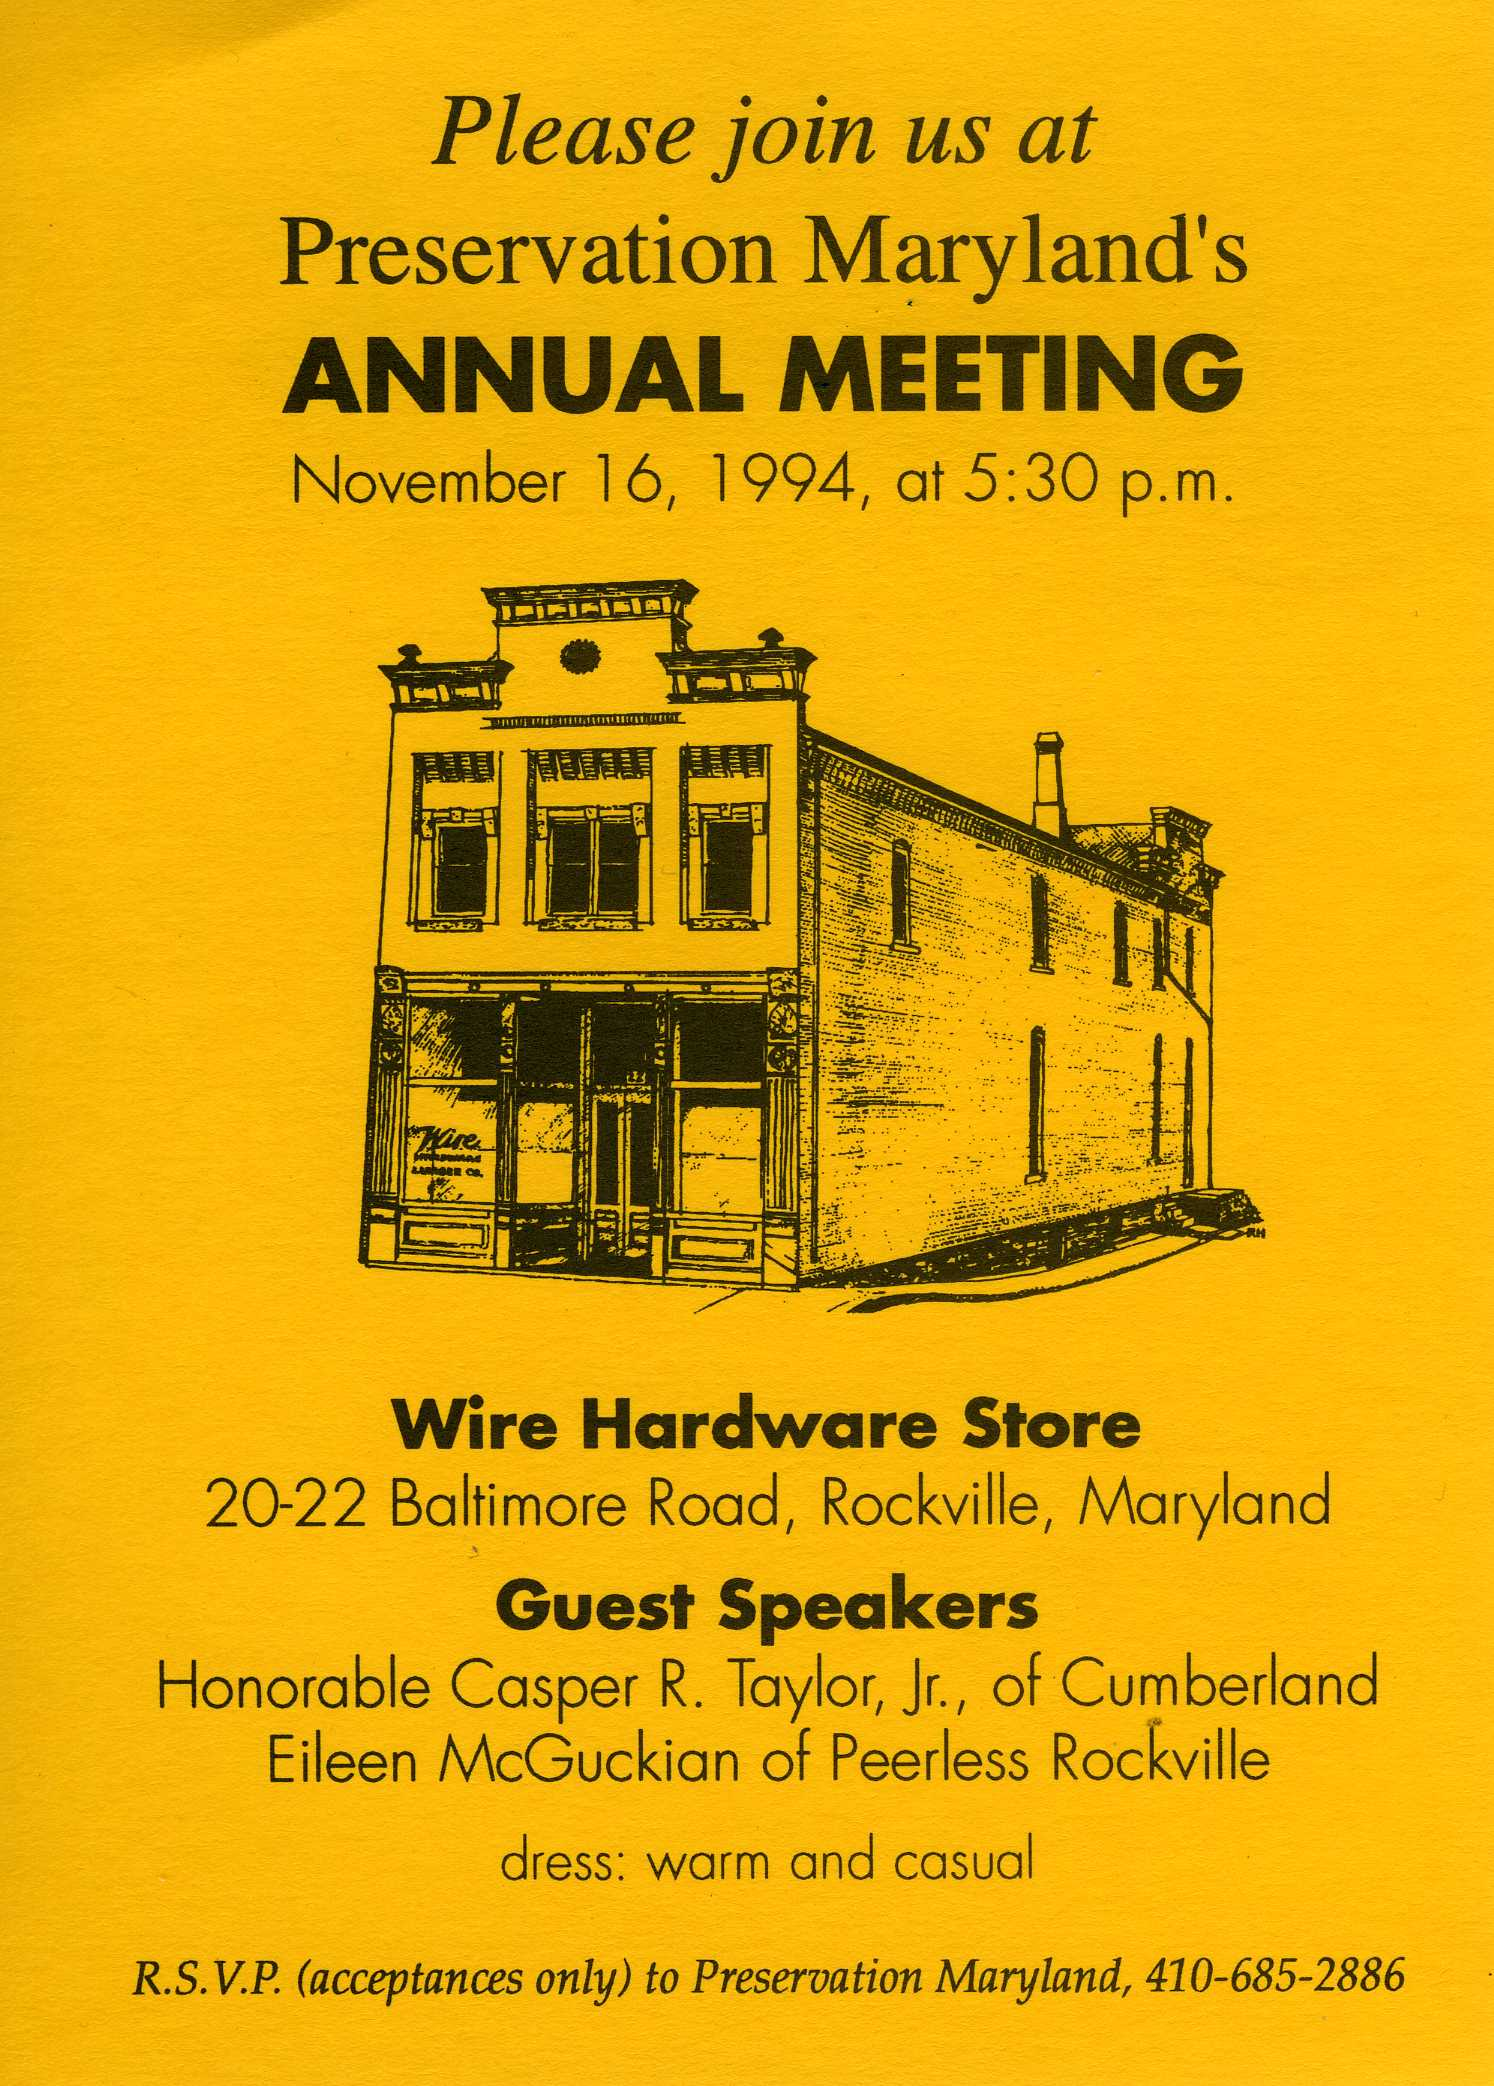 Invitation to Preservation Maryland's meeting at Wire Hardware